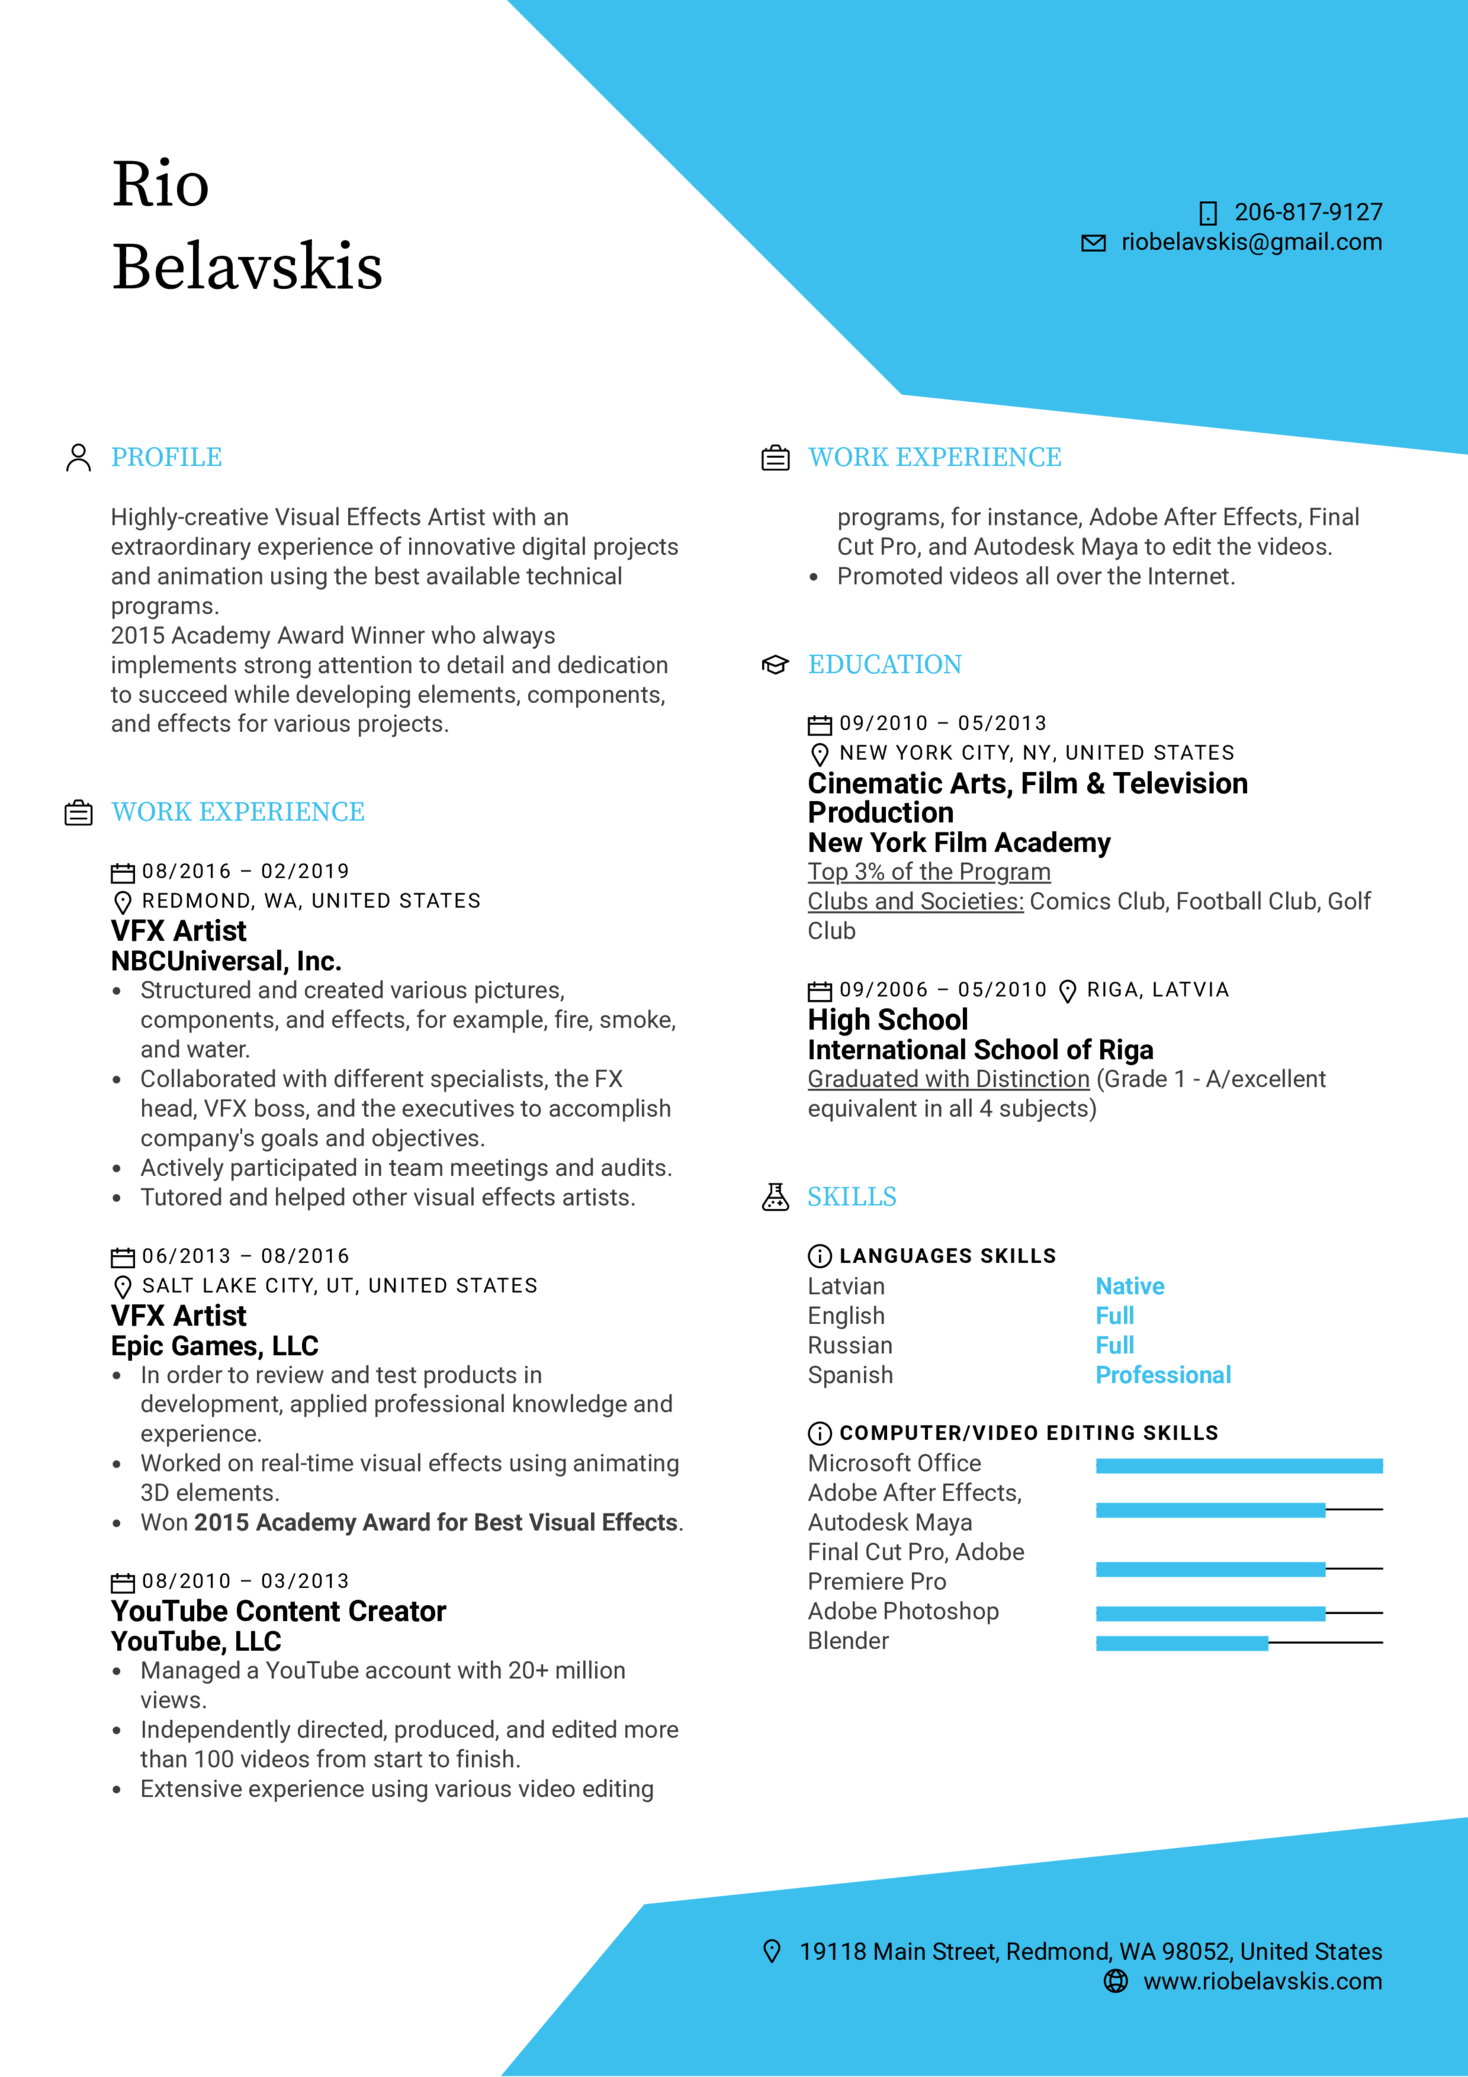 Visual Effects Artist Resume Template (parte 1)